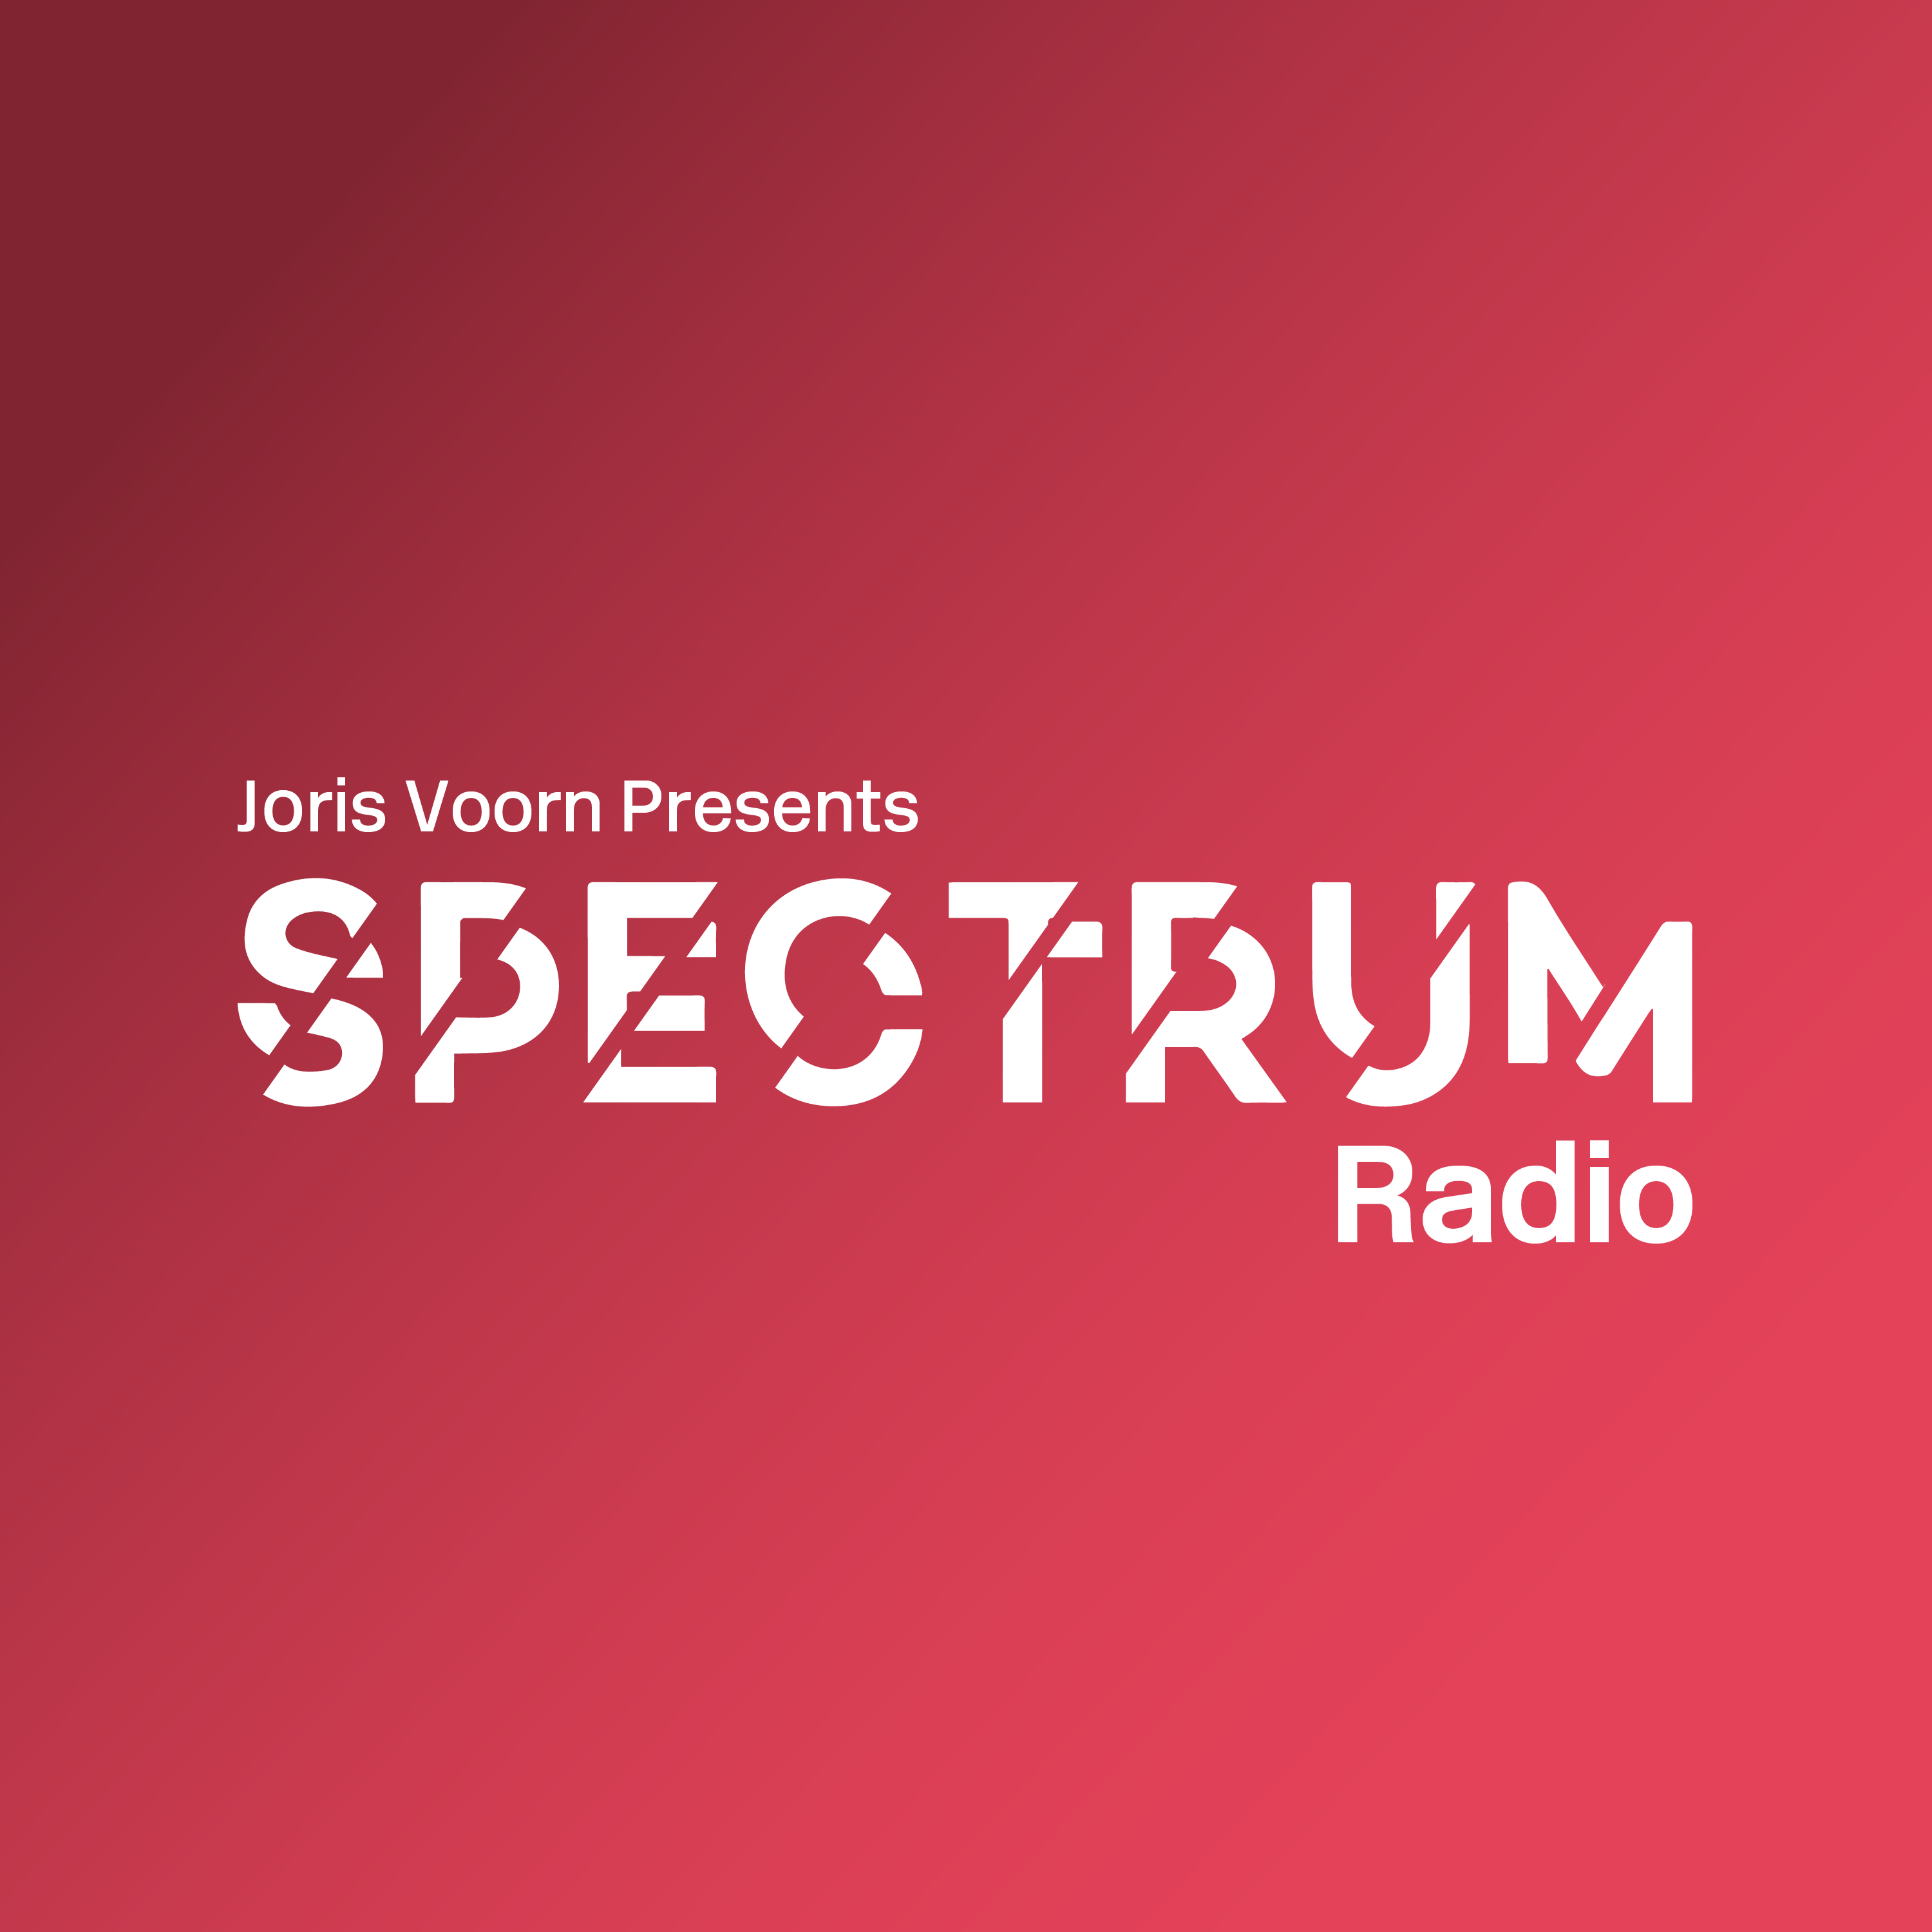 Delta Podcasts - Spectrum Radio by Joris Voorn (12.11.2017)